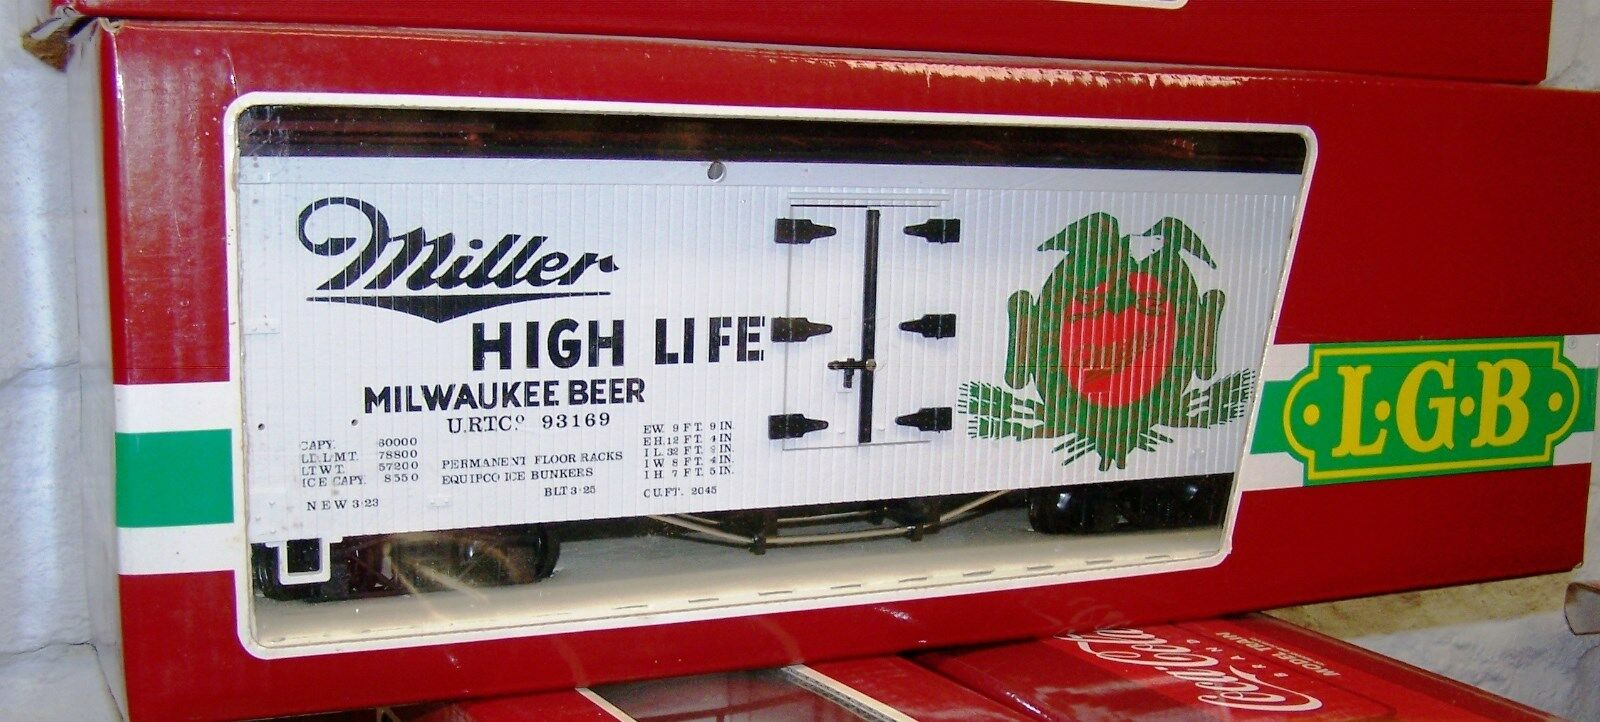 LGB G SCALE MILLER HIGH LIFE BEER, WOODEN REEFER, 4 AXLE  LGB NEW, MINT